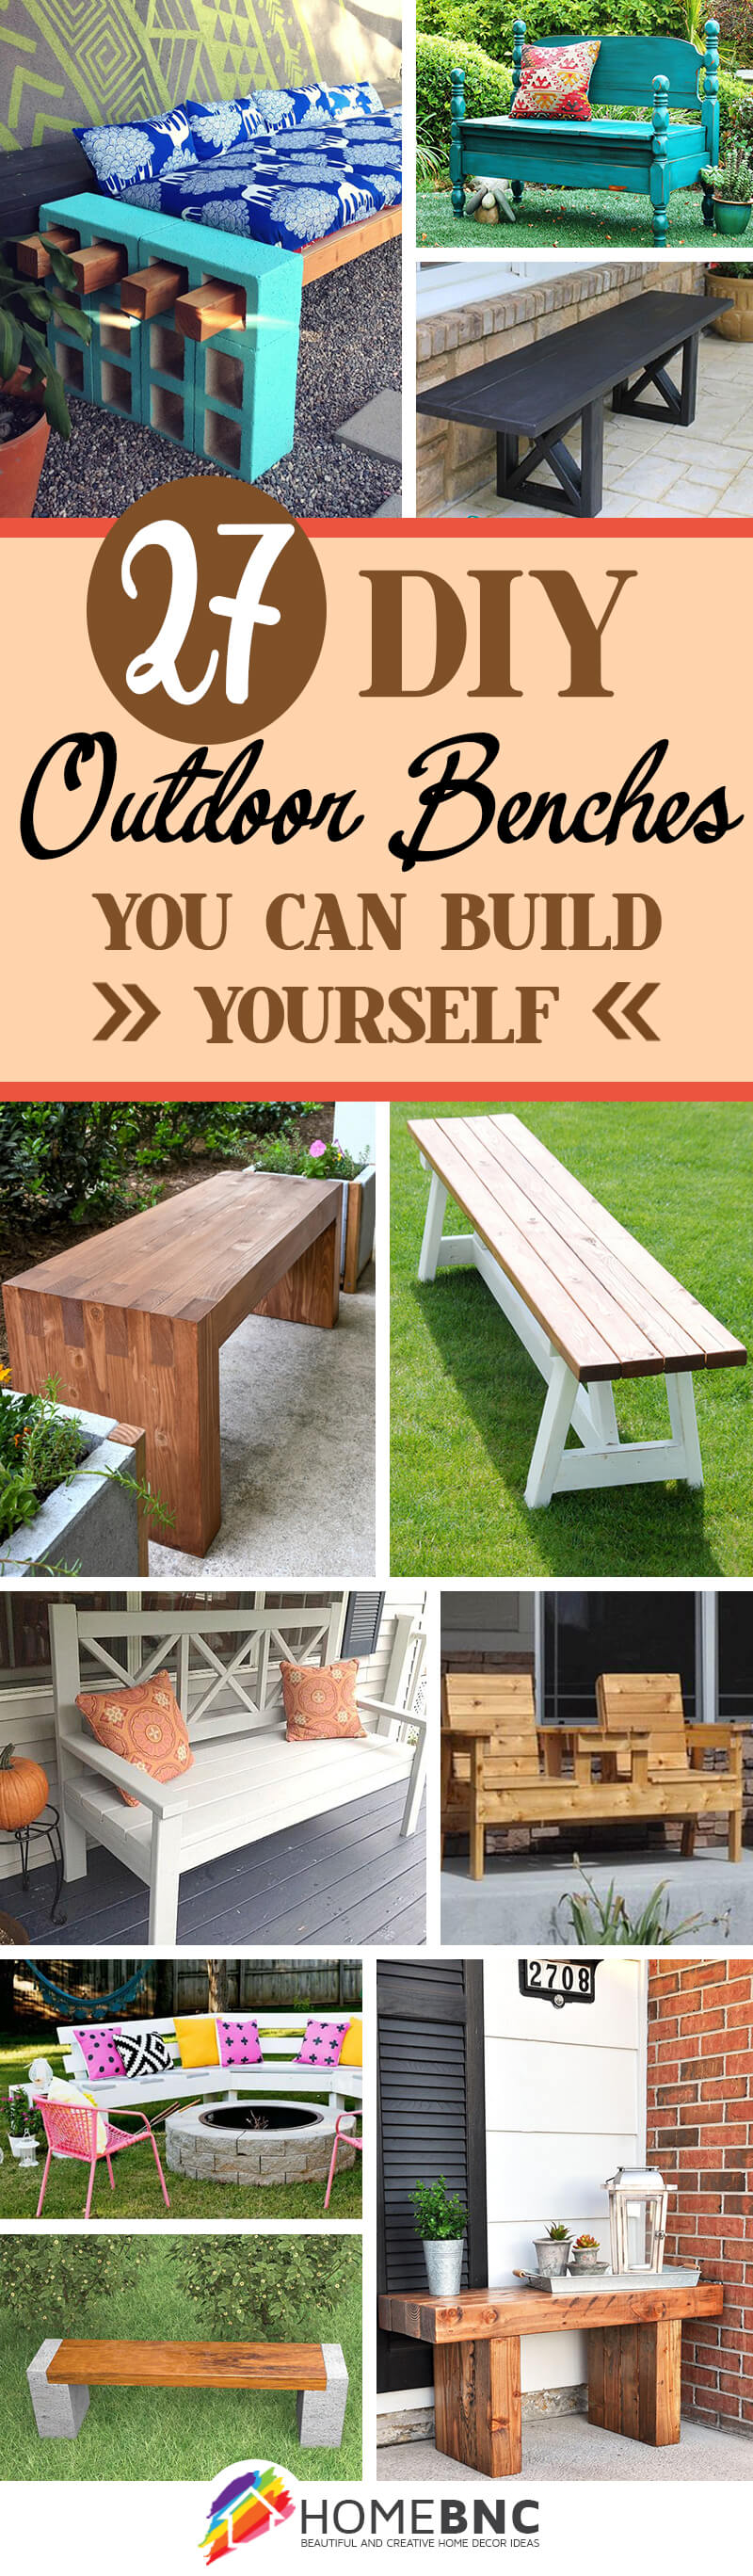 27 Best DIY Outdoor Bench Ideas and Designs for 2019 Designs Build Garden Bench on build gazebo, build garden furniture, build garden bed, build wooden benches, build garden fountain, build garden stool, build pond, build garden table, build garden bridge, build garden wall, build garden door, build garden box, build garden chair, build garden storage, build garden fence, build garden terrace,